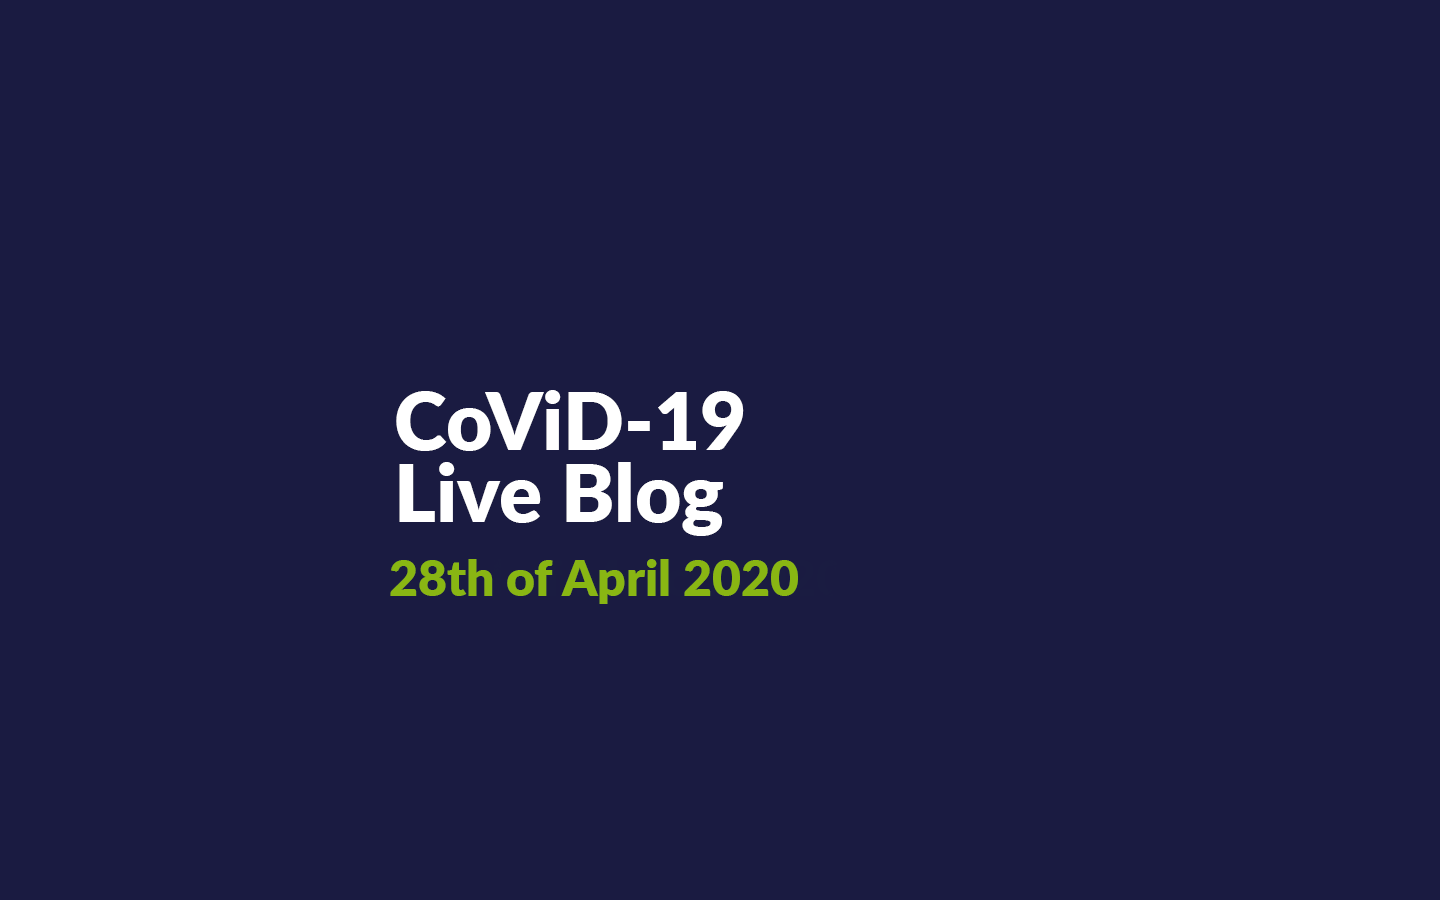 04-28-2020 | Live Blog for CoViD-19 Updates in Germany in English